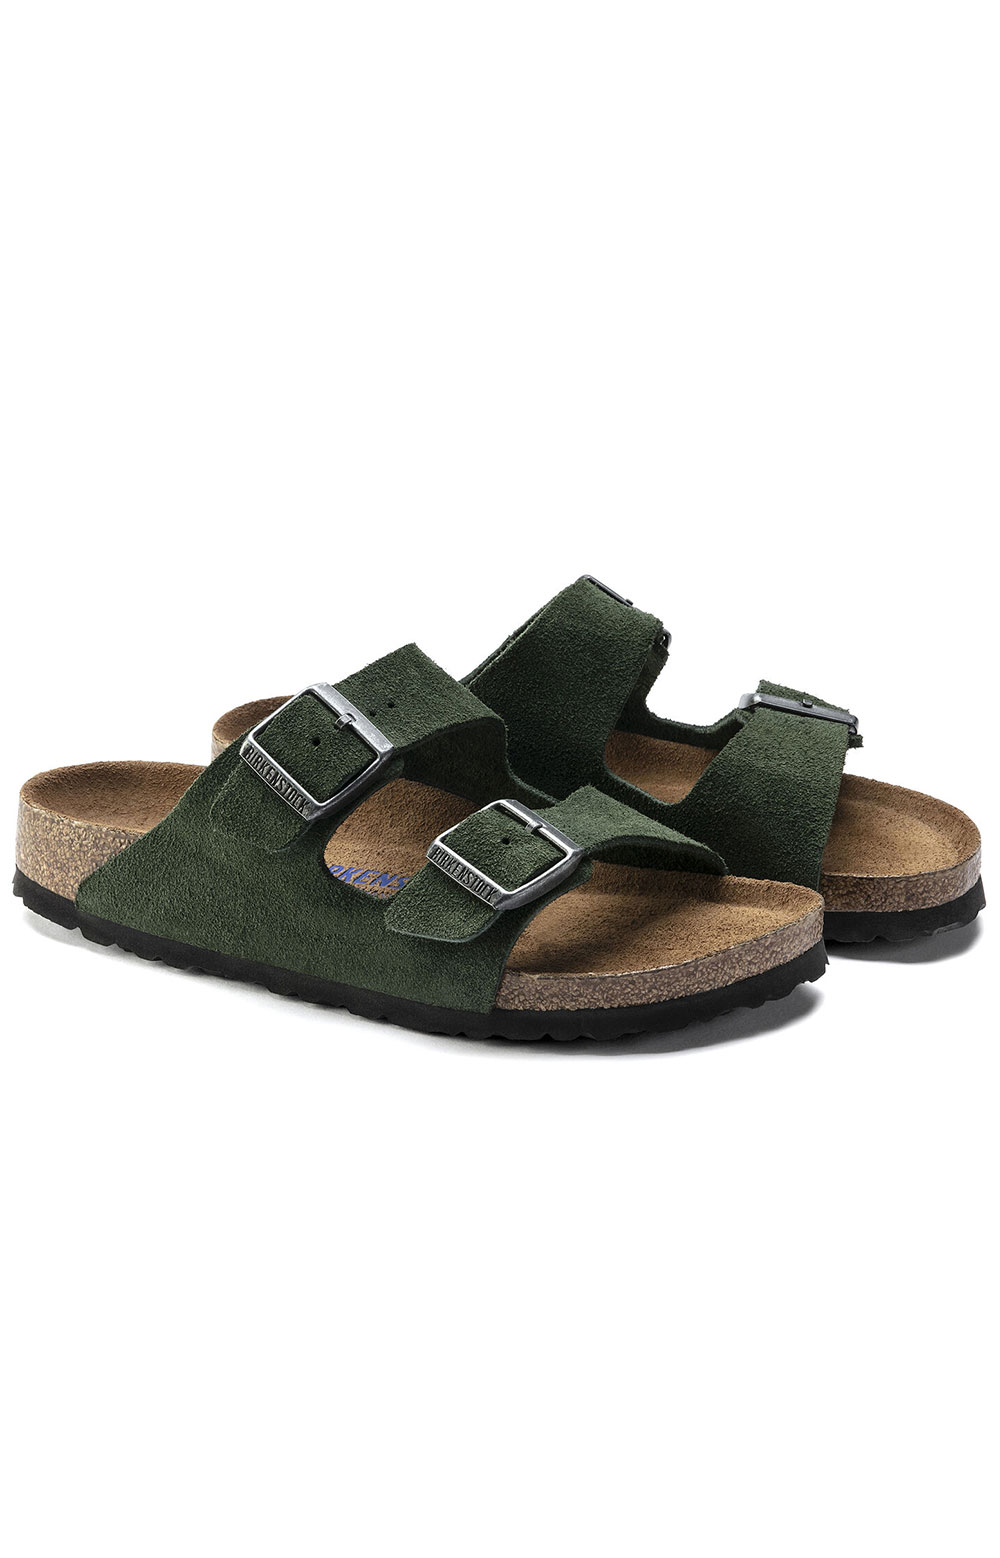 (1018143) Arizona Soft Footbed Sandals - Mountain View Green